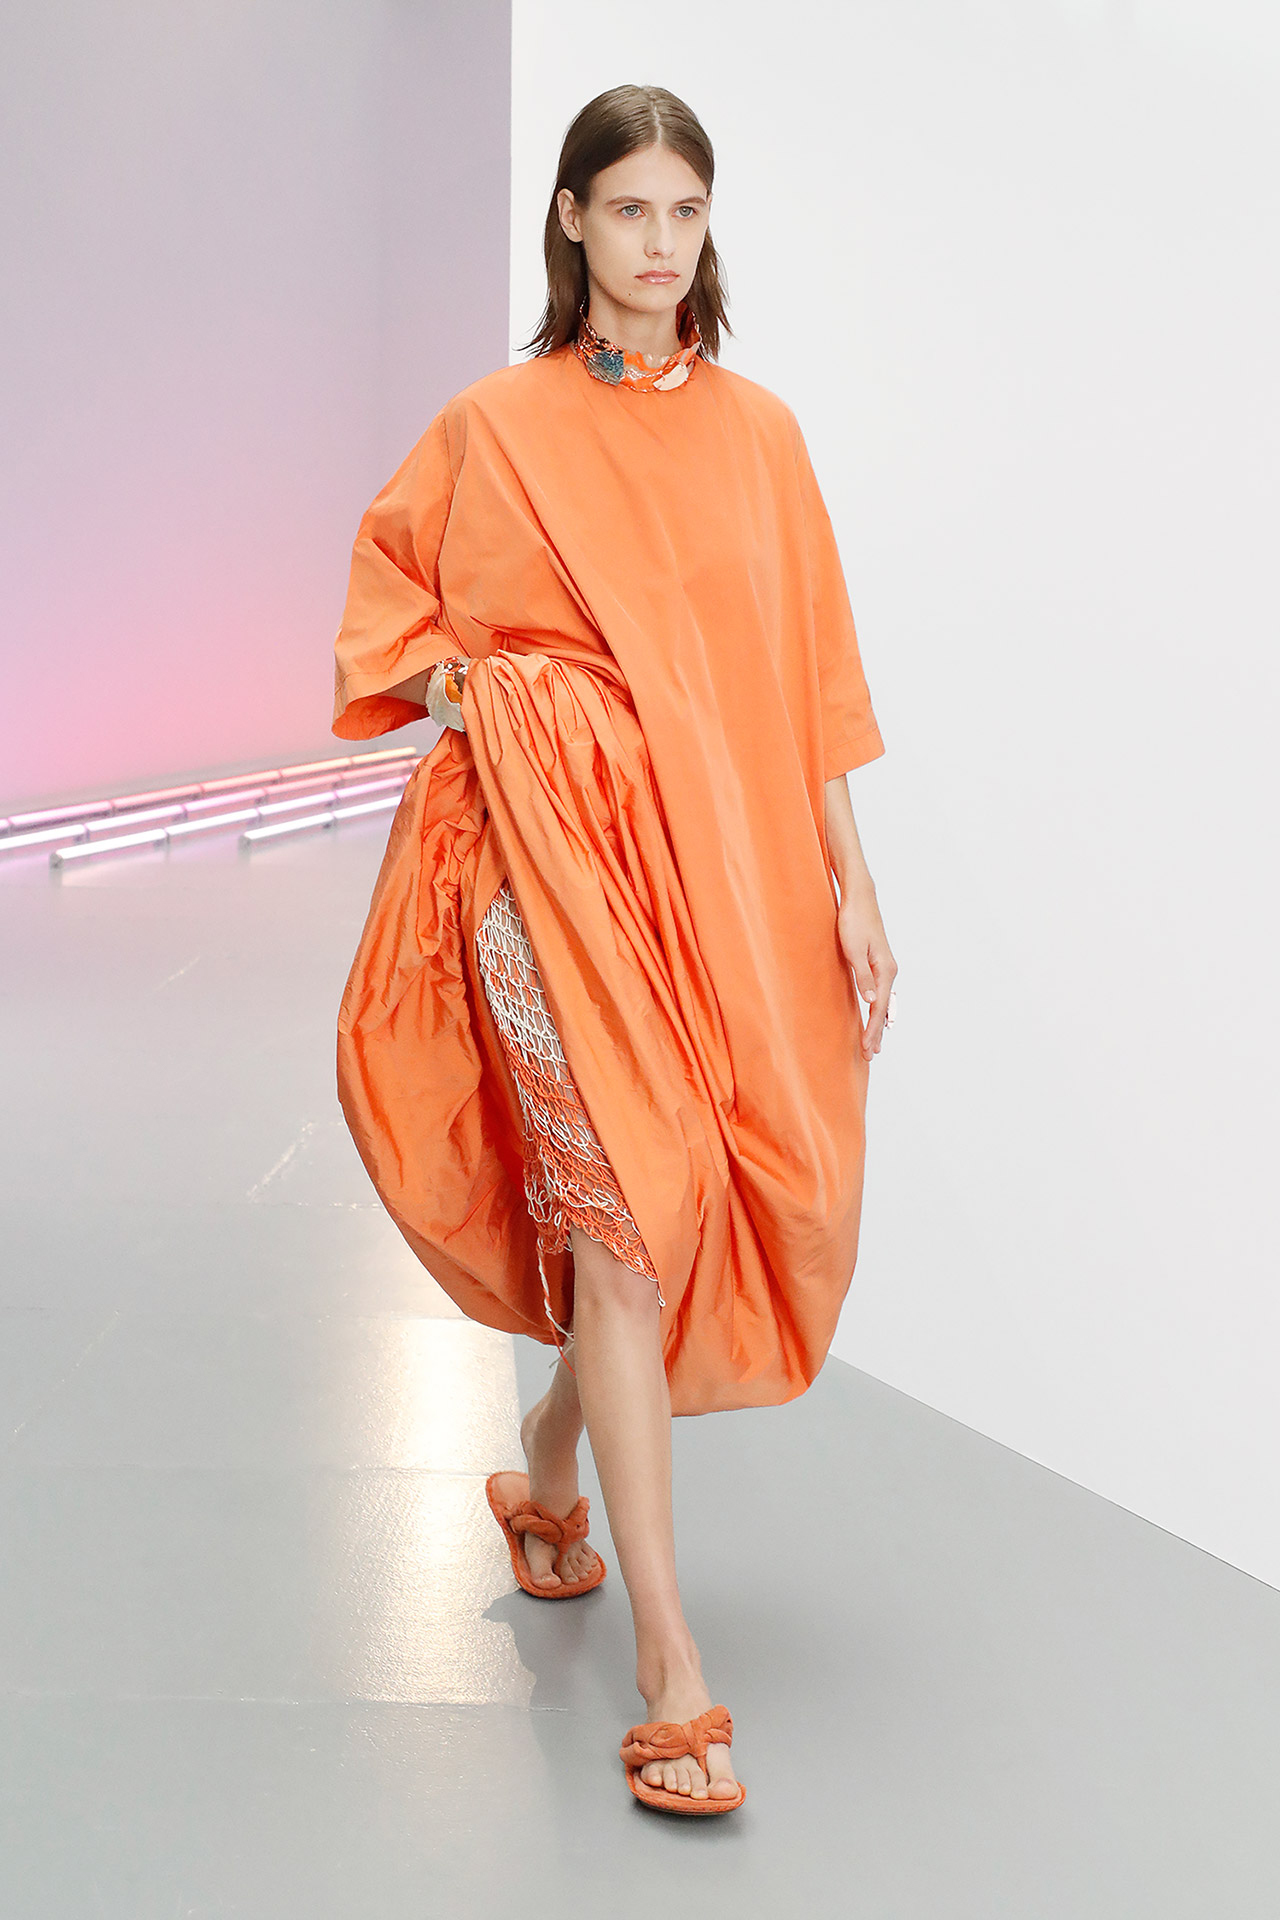 LOOK 27 ACNE STUDIOS SS 2021 COLLECTION